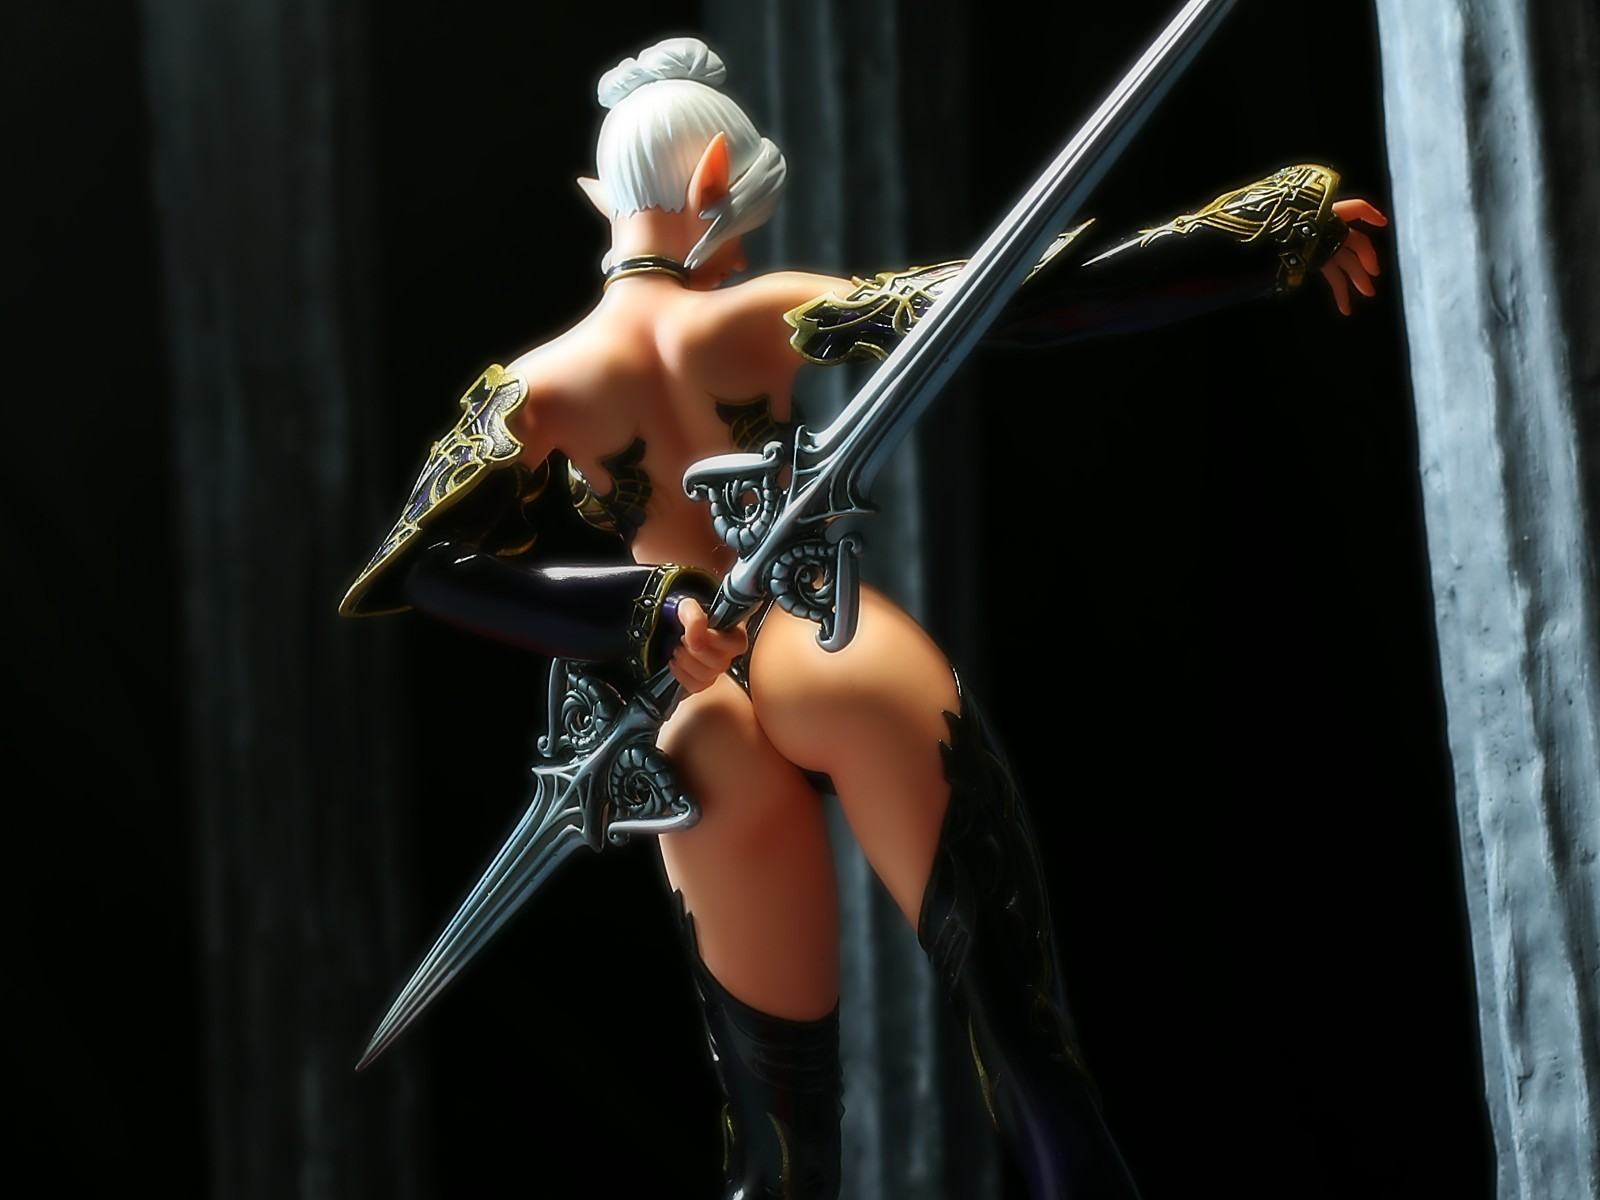 lineage 2 figurines HD Wallpaper